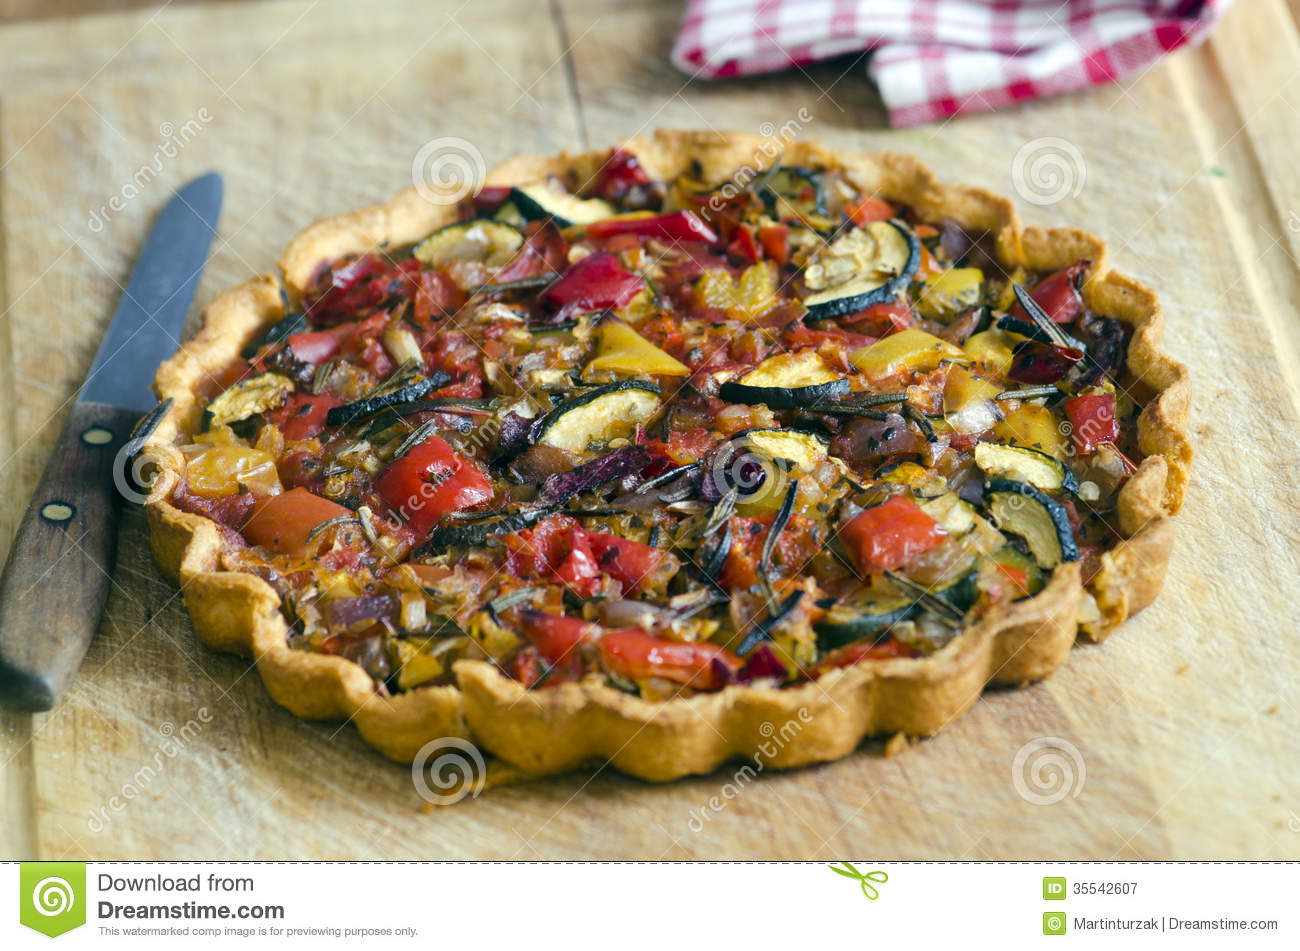 Roasted vegetable tart with buttery sundried tomato shortcrust pastry.